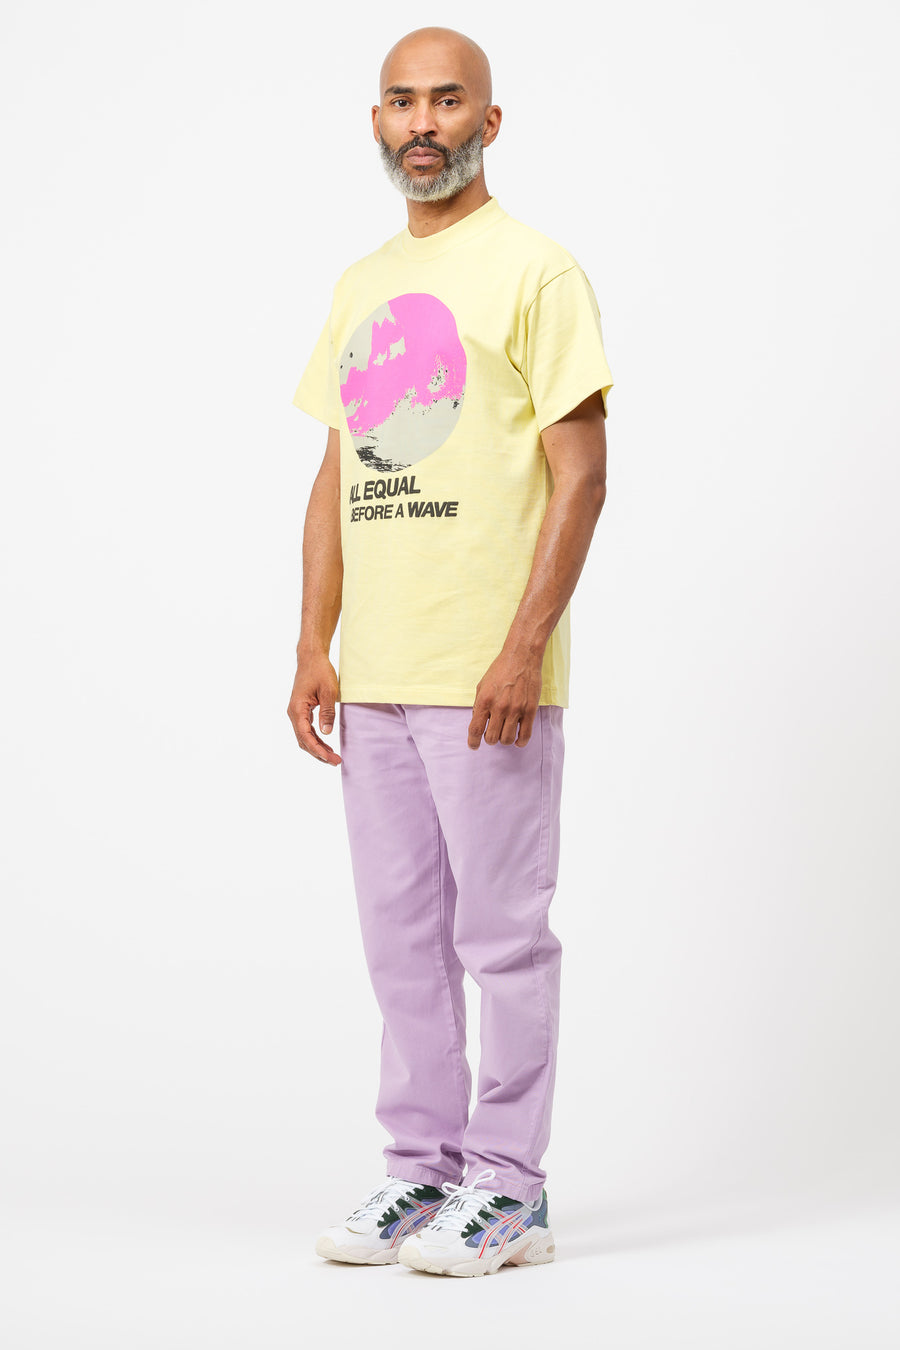 AMBUSH All Equal T-Shirt in Yellow - Notre